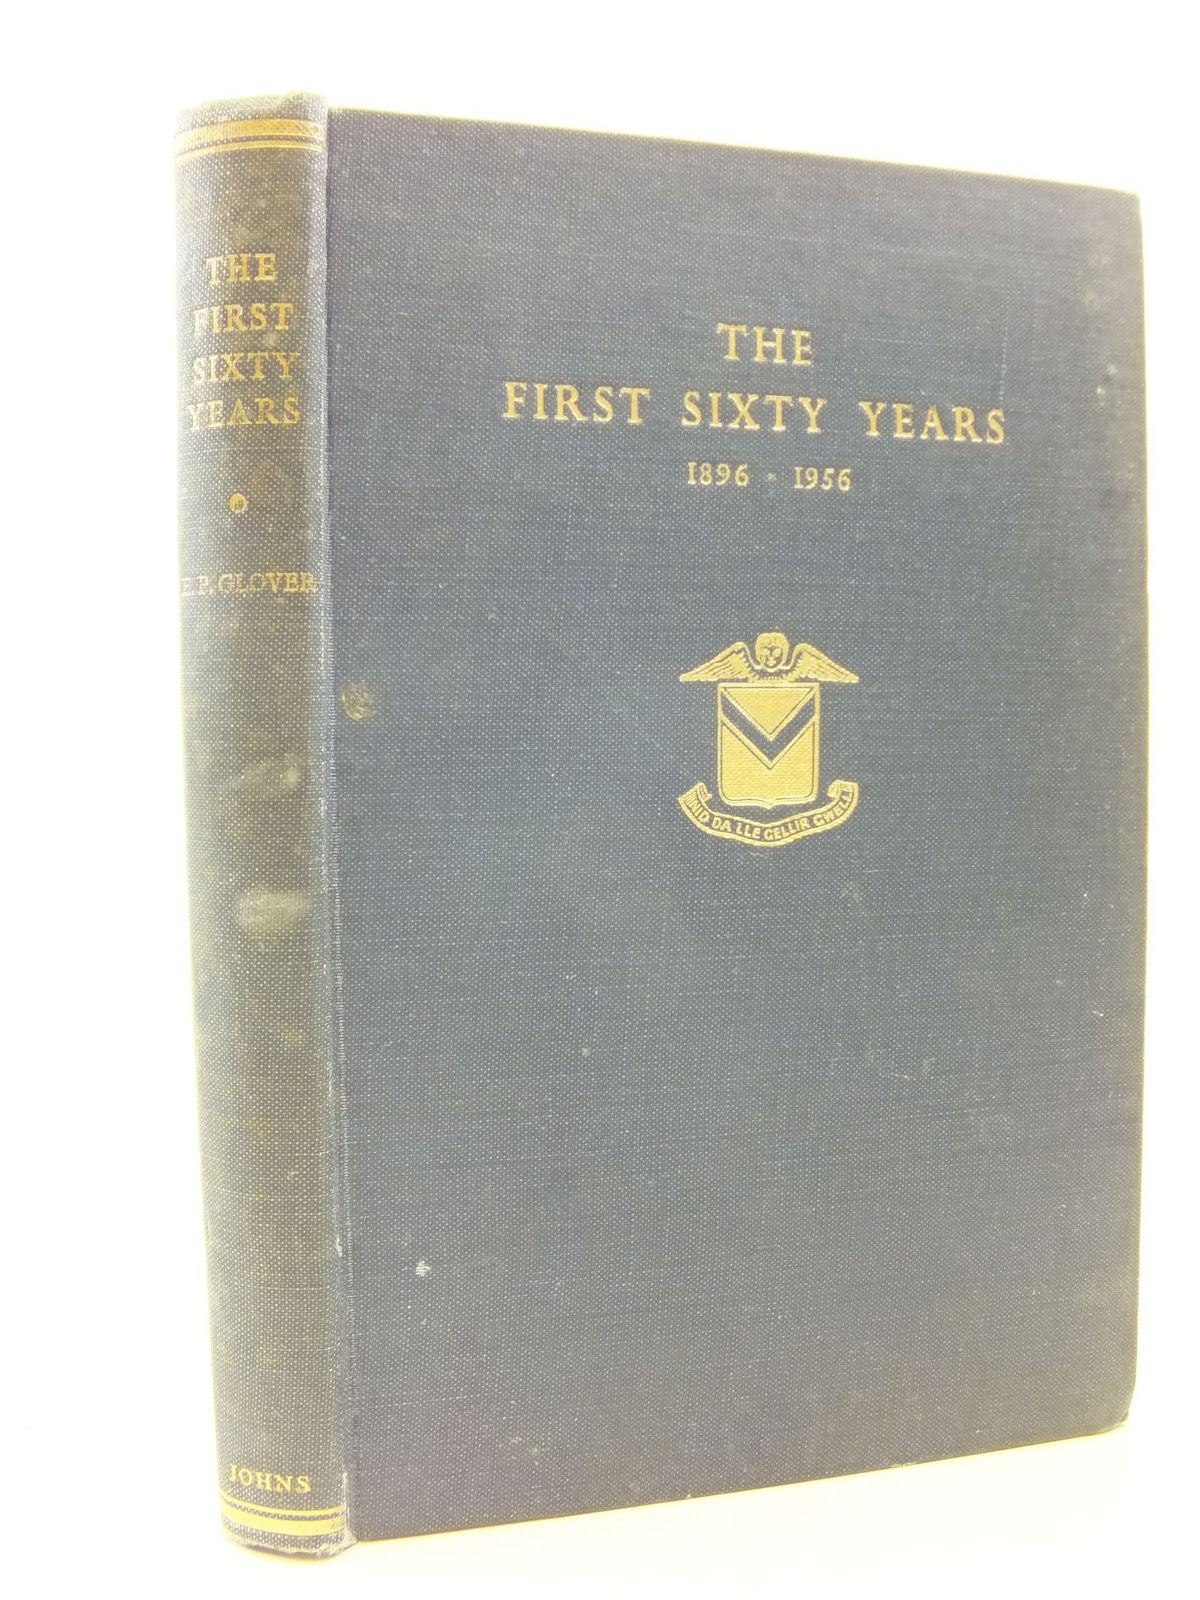 Photo of THE FIRST SIXTY YEARS 1896-1956 written by Glover, E.P. published by R.H. Johns Limited (STOCK CODE: 2113641)  for sale by Stella & Rose's Books